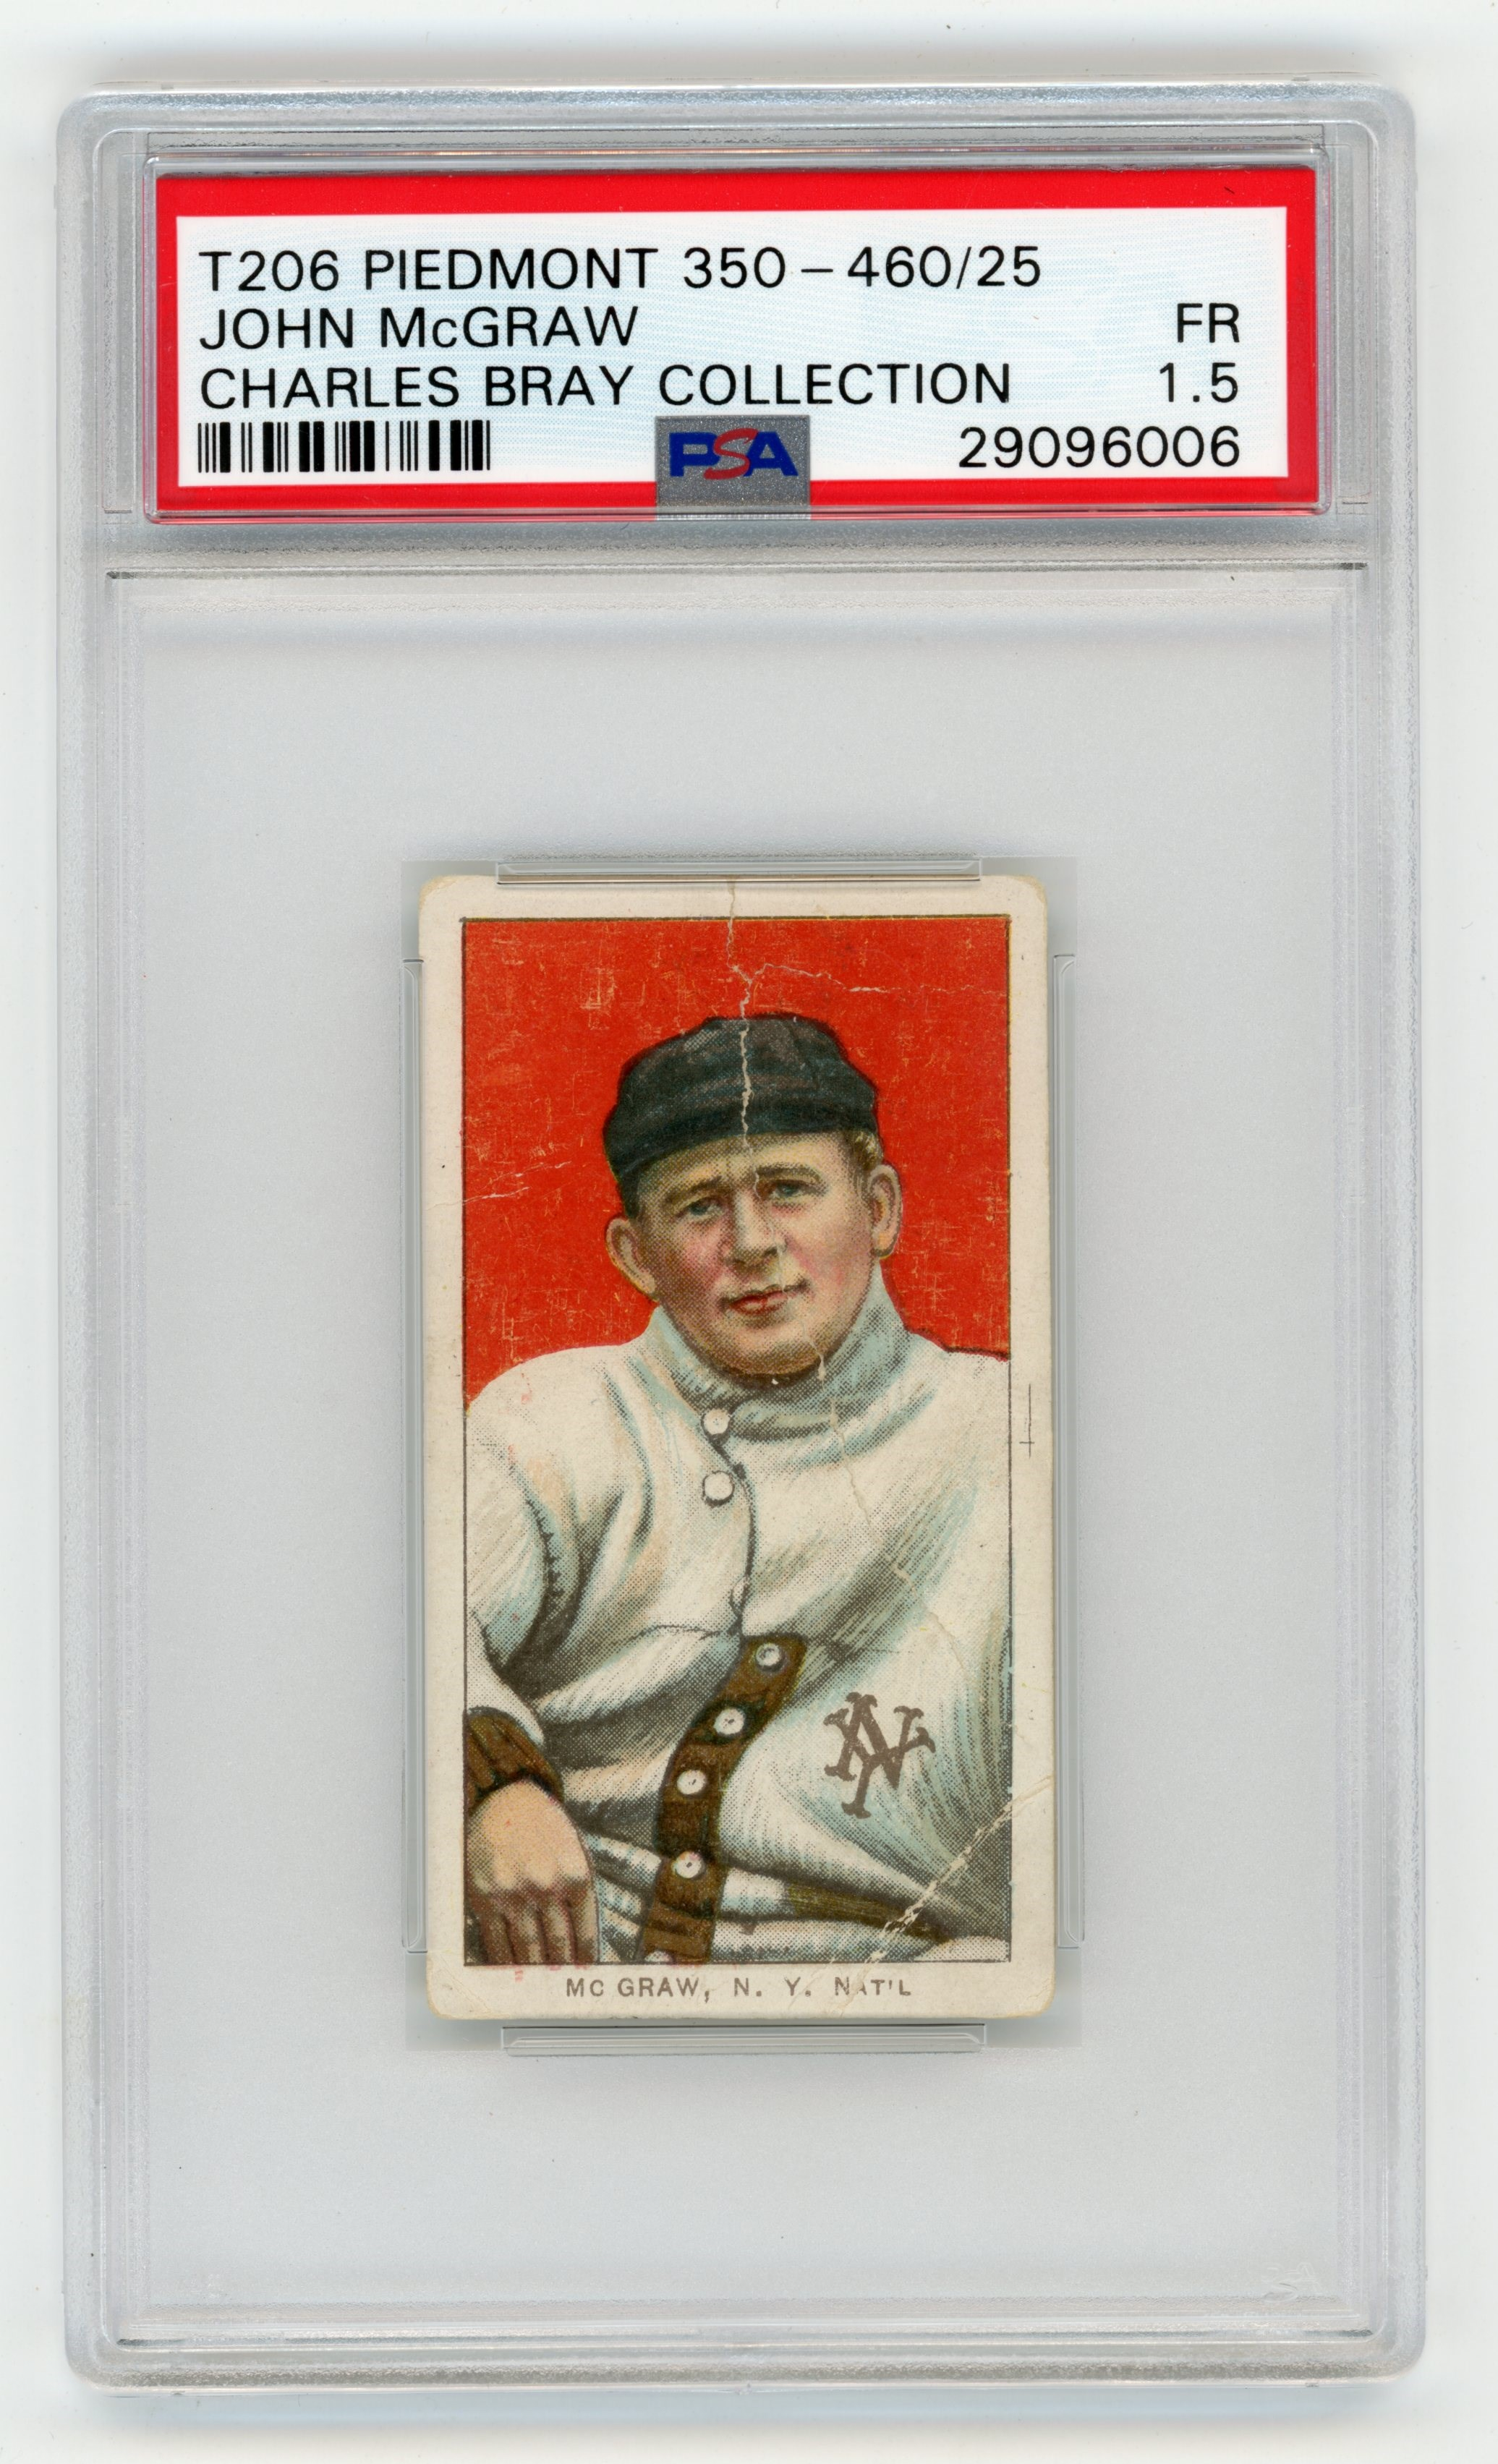 T206 Piedmont 350-460/25 John McGraw PSA 1.5 From Charles Bray Collection